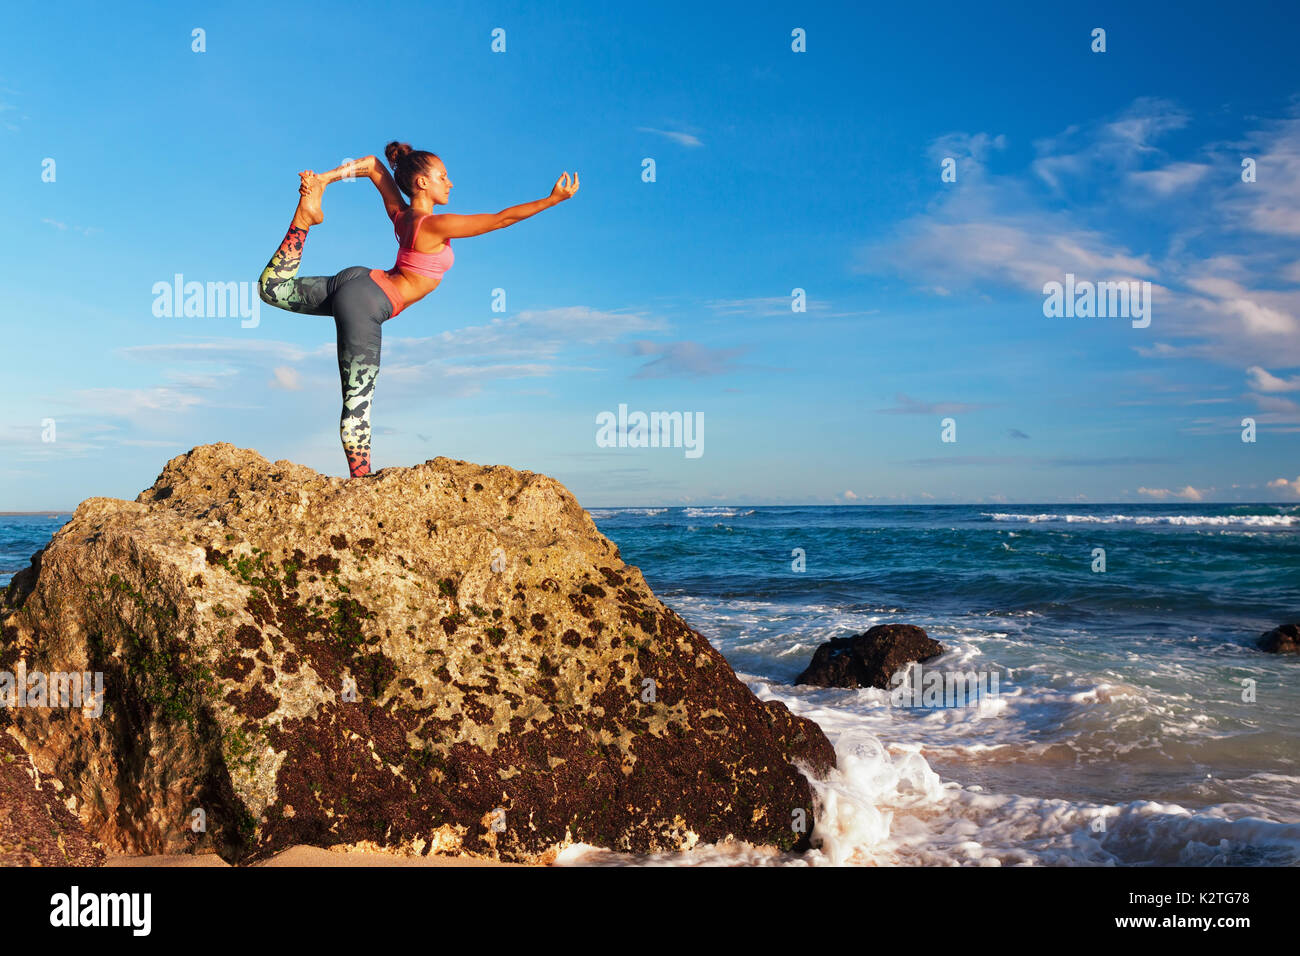 Meditation on sunset sky background. Young active woman stand in yoga pose on beach rock to keep fit and health. Healthy lifestyle, outdoor fitness. - Stock Image